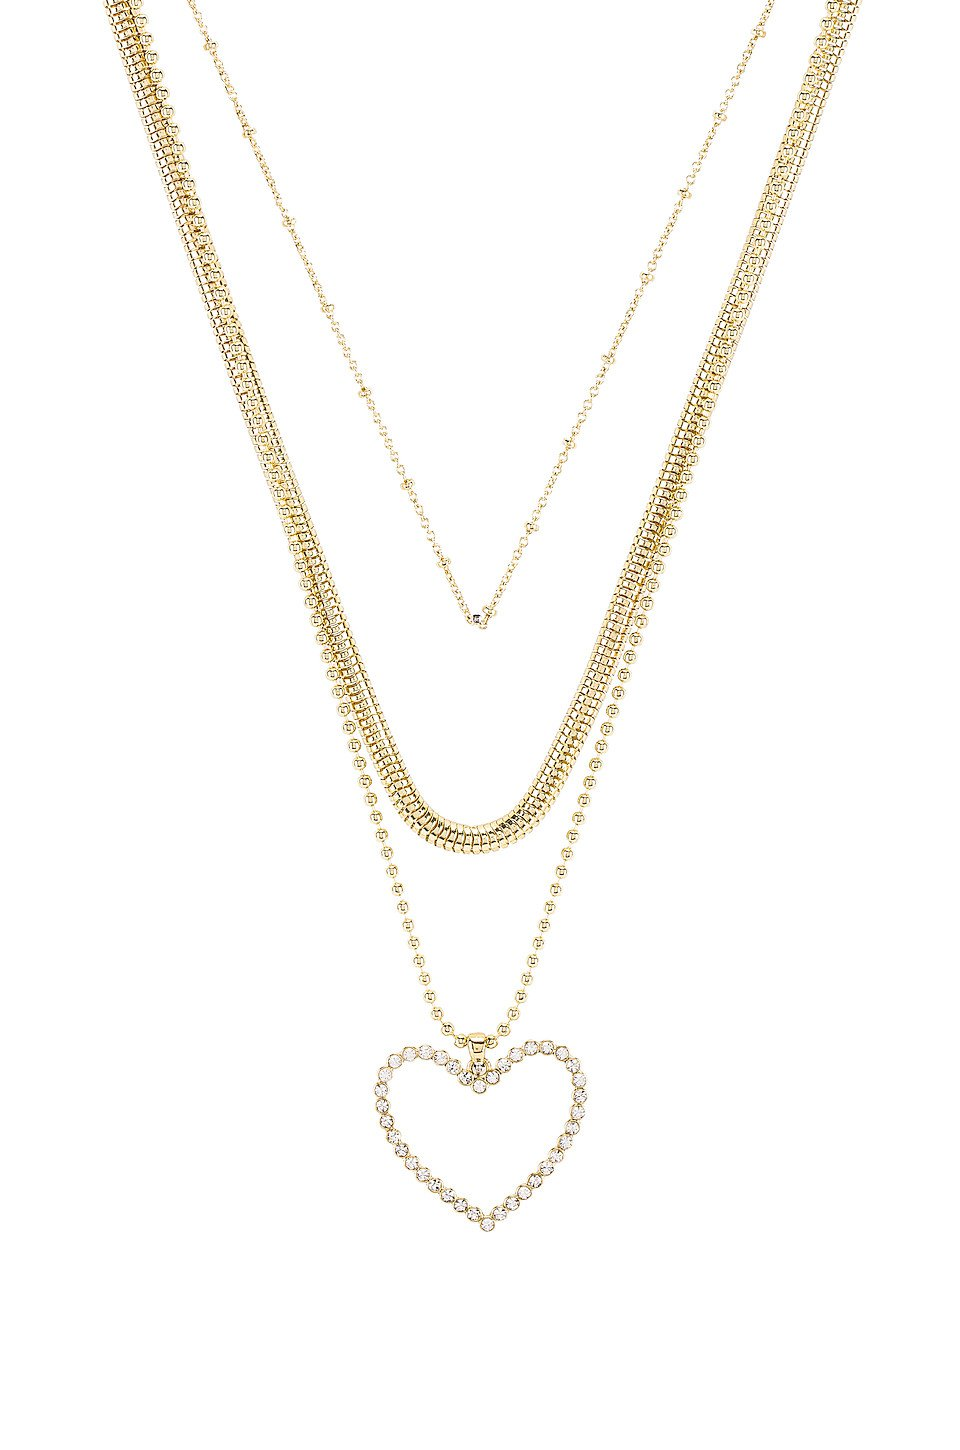 The Studded Hearts Charm Necklace